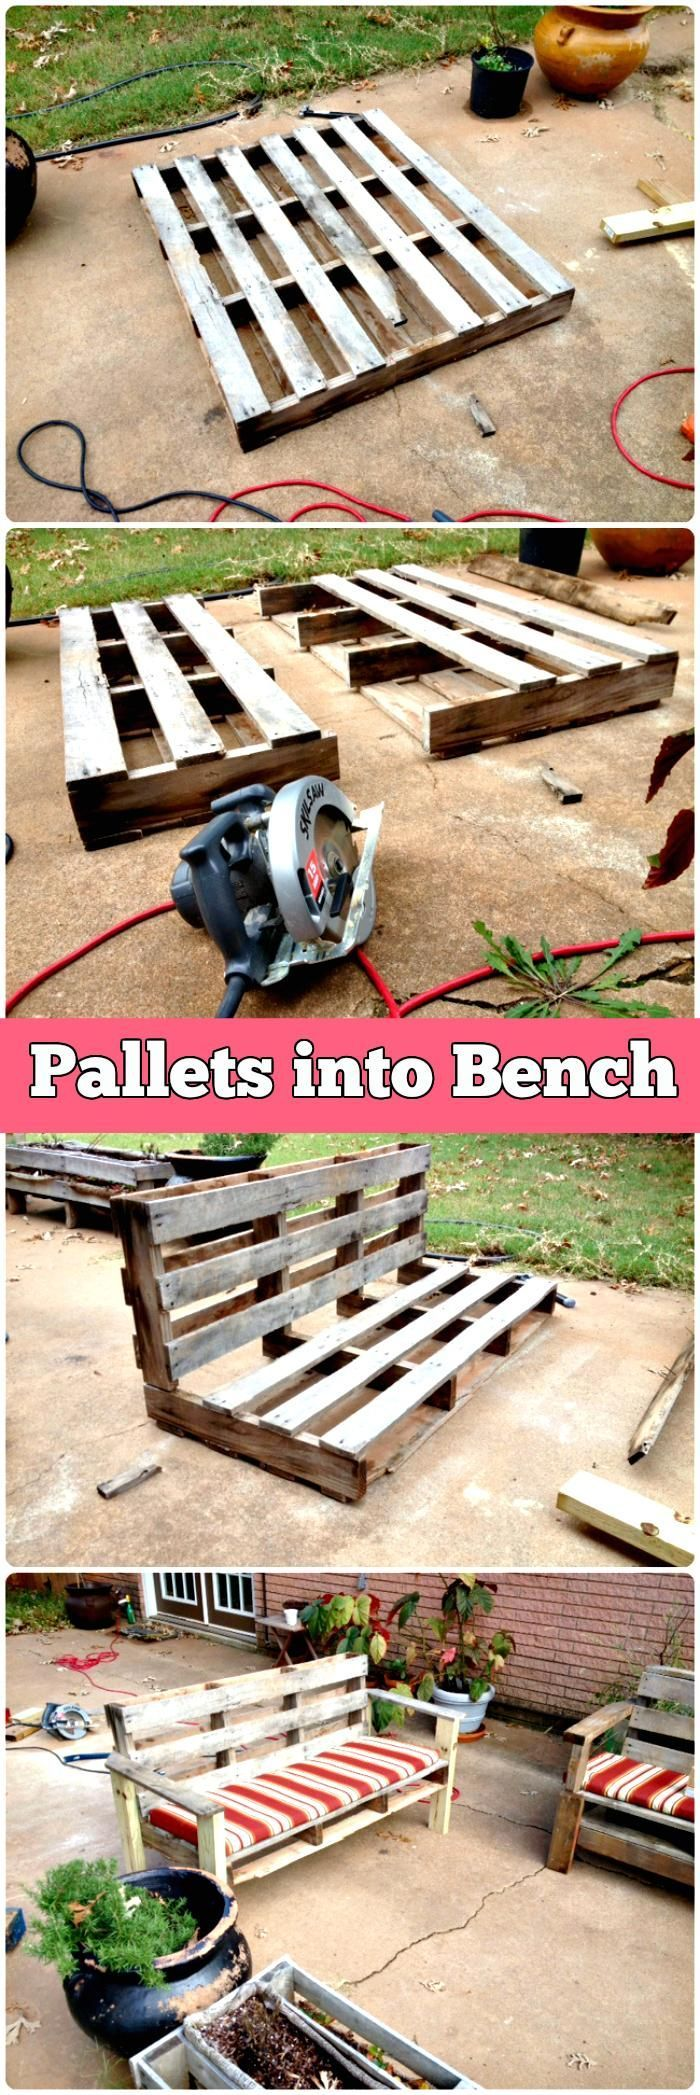 5 Easy Step DIY Transformation – Pallet into Outdoor Patio Bench - 150 Best DIY Pallet Projects and Pallet Furniture Crafts - Page 30 of 75 - DIY & Crafts More on good ideas and DIY #diyoutdoorprojects